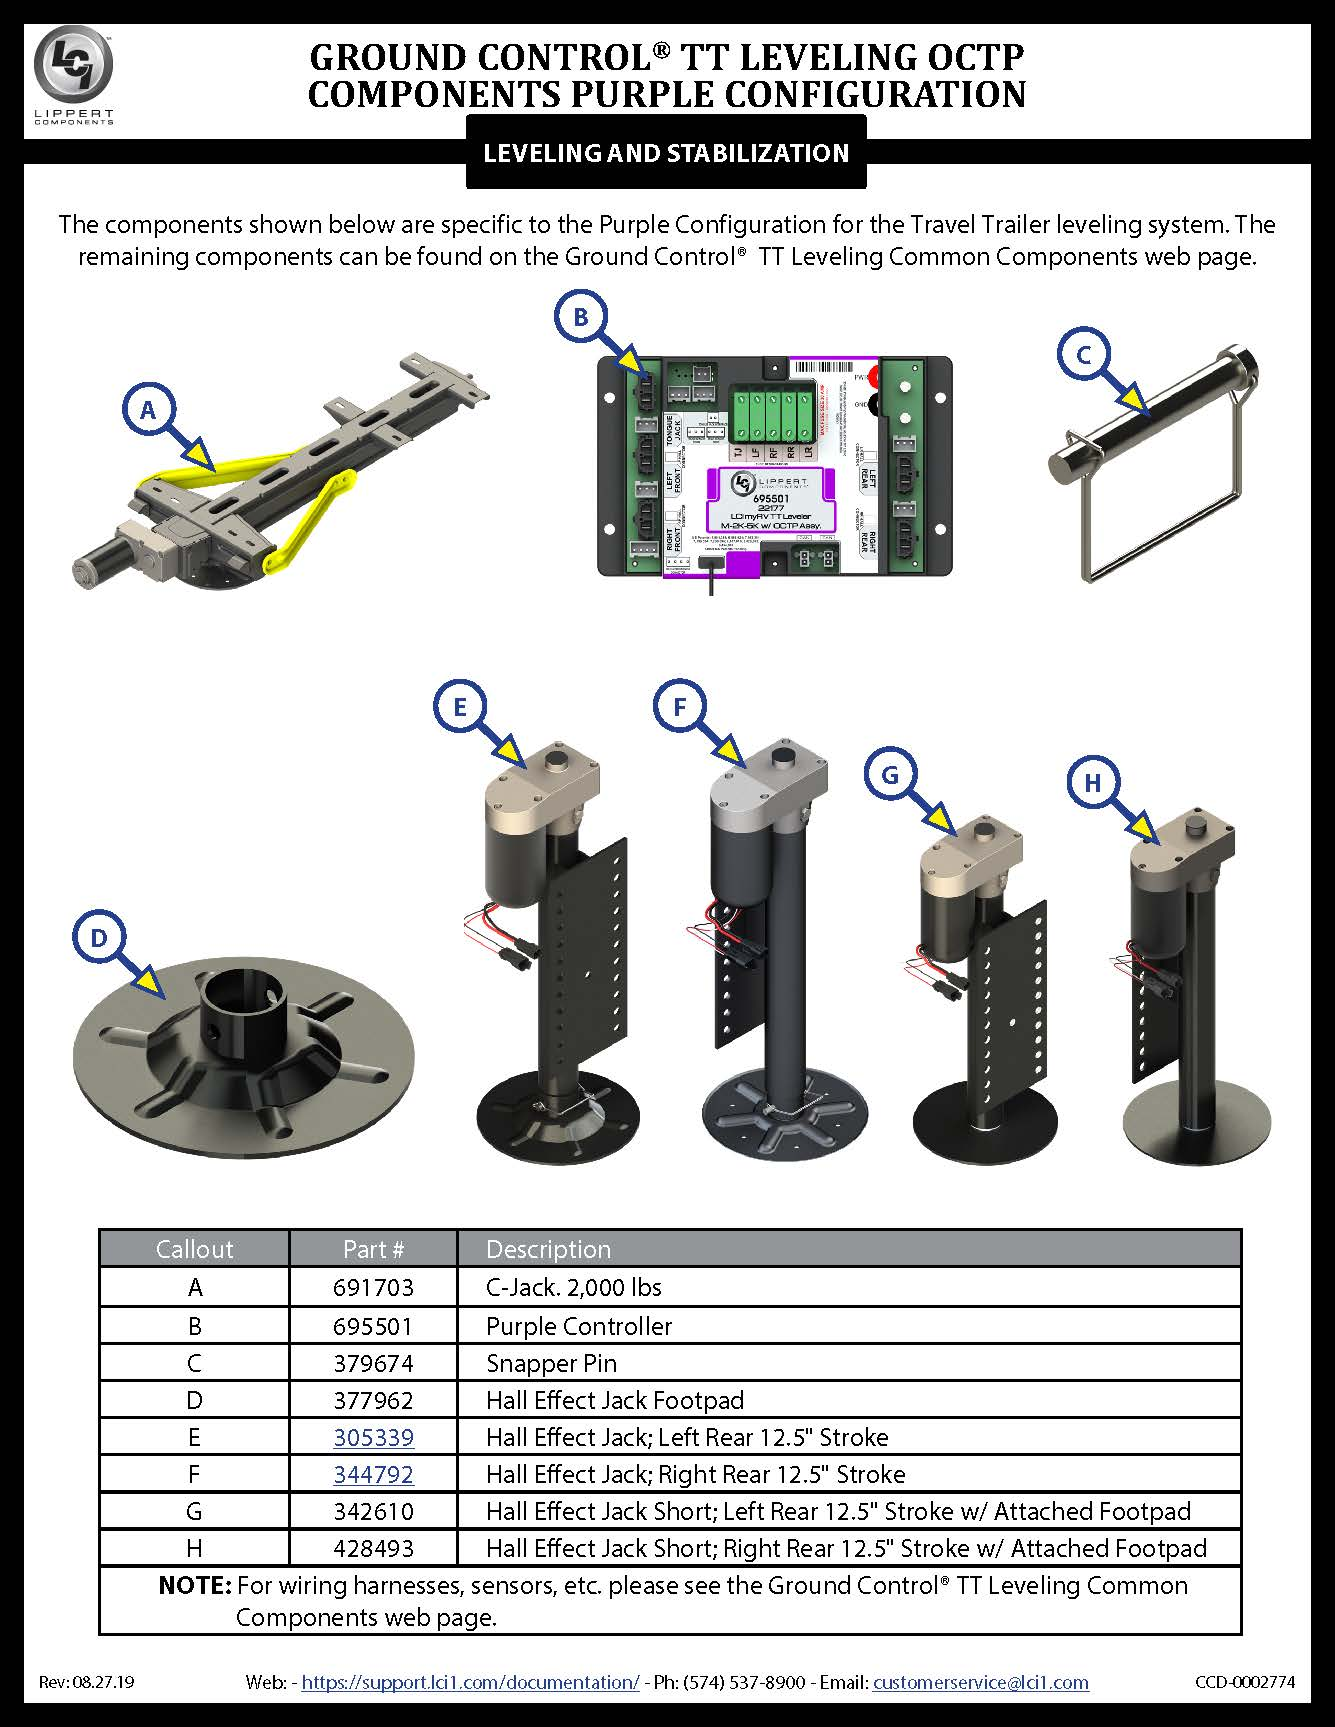 Ground Control® TT Leveling OCTP Purple Configuration Components